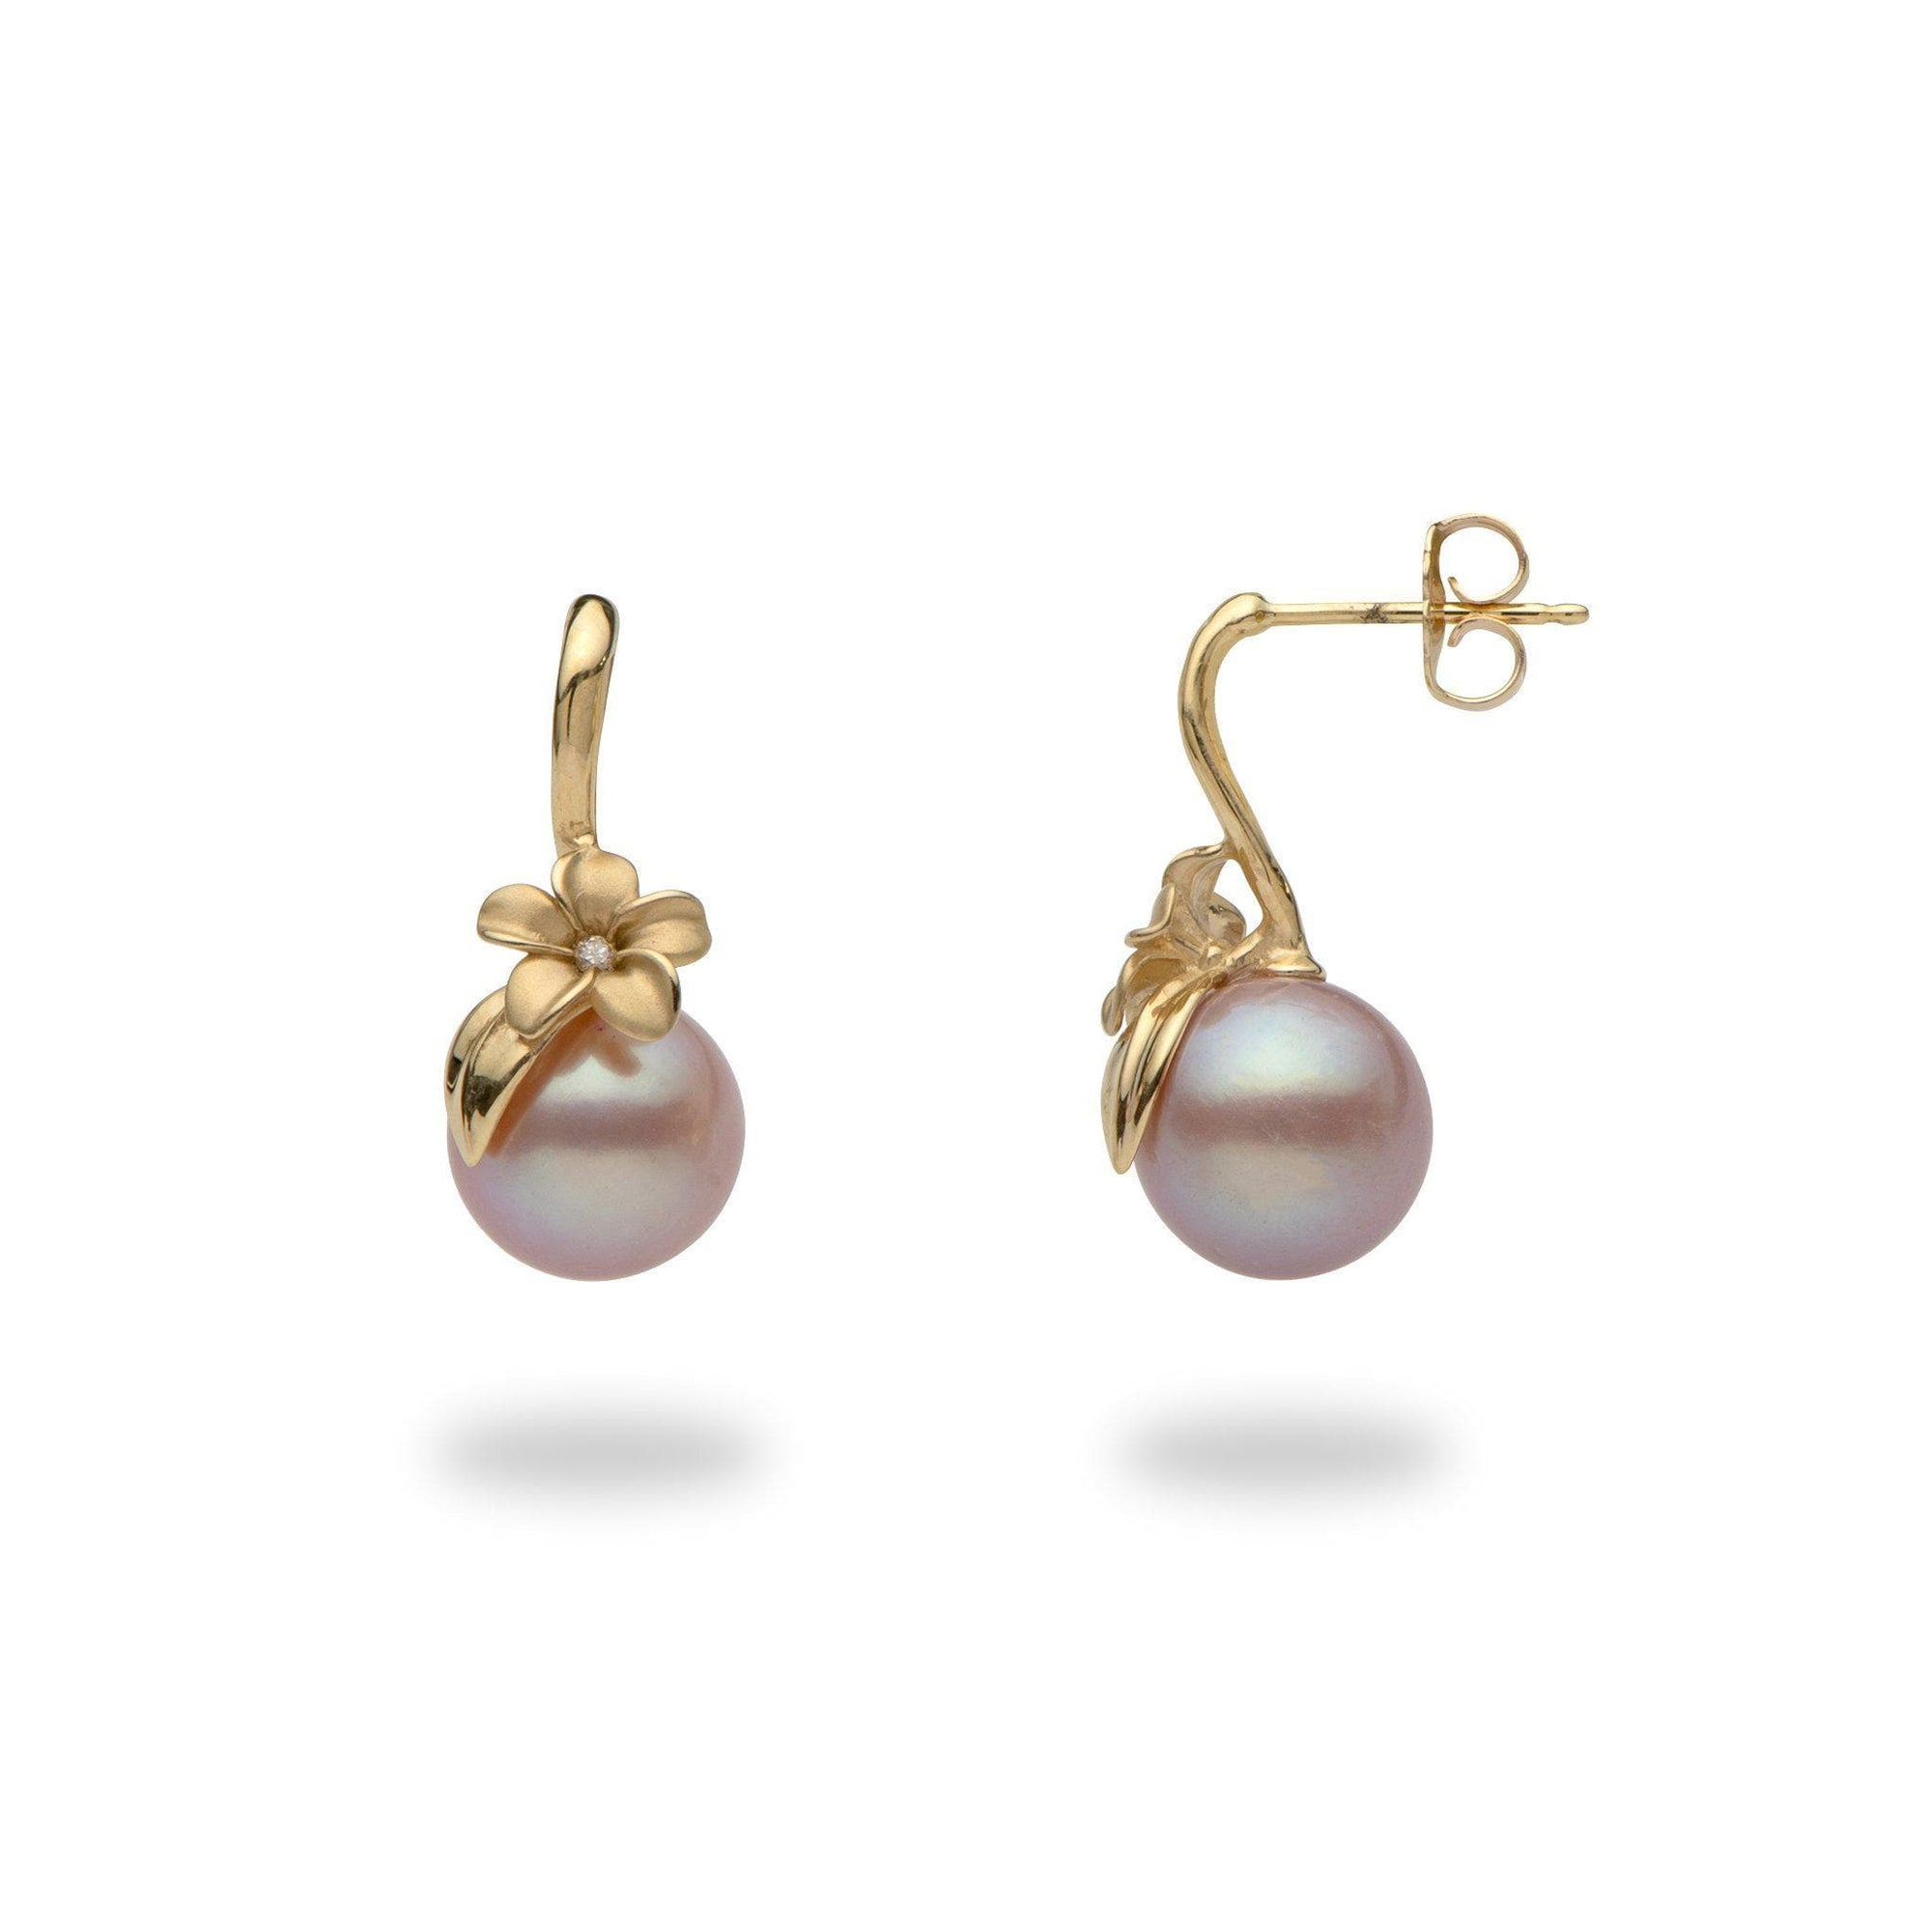 Plumeria purple pearl earrings